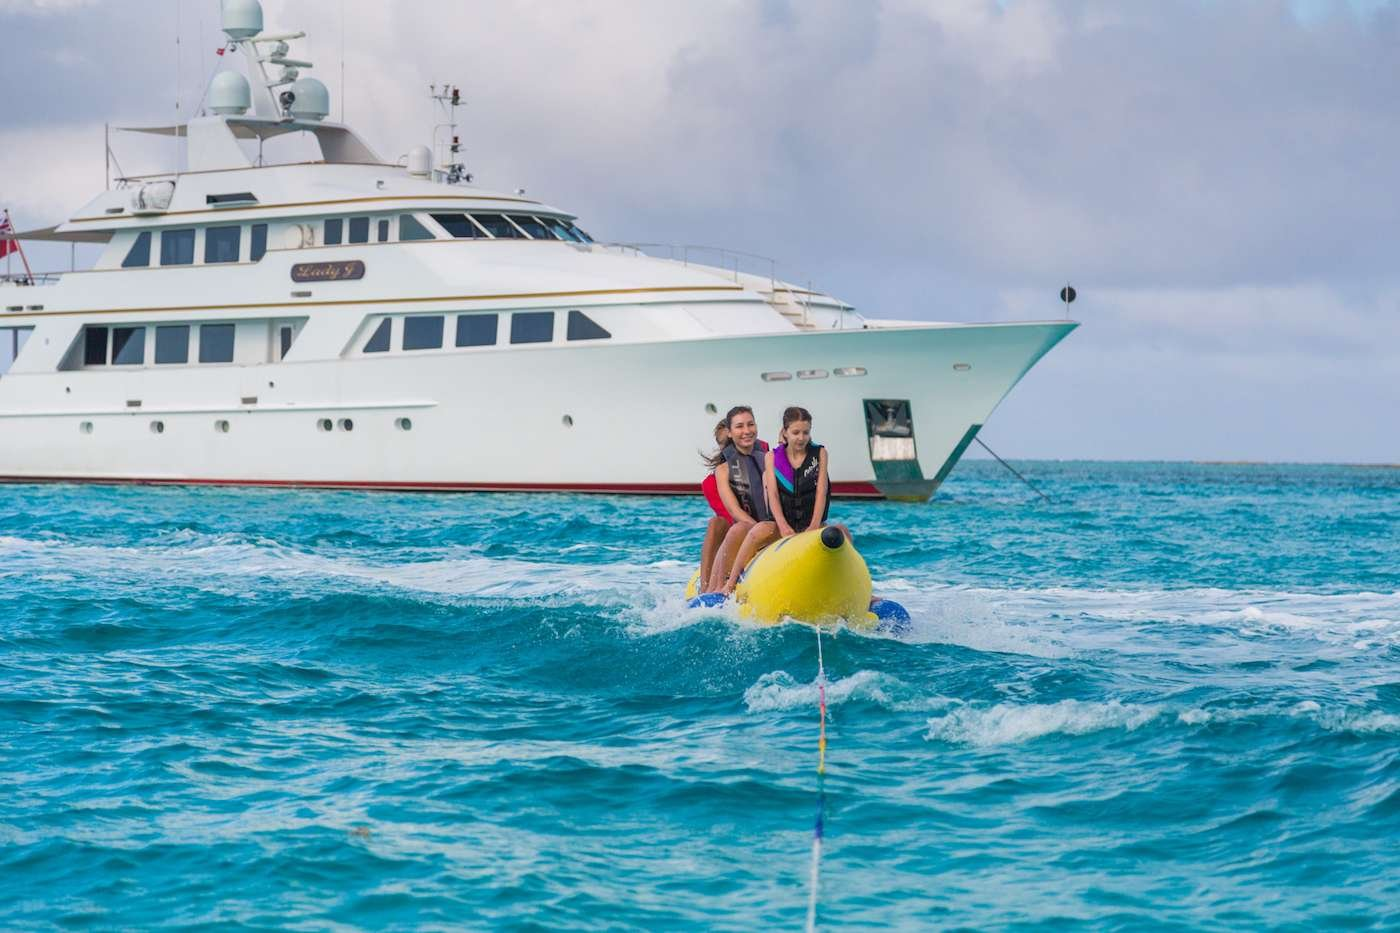 Motor Yacht 'LADY J' Water Toys, 12 PAX, 9 Crew, 142.00 Ft, 43.00 Meters, Built 1997, Palmer Johnson, Refit Year 2017